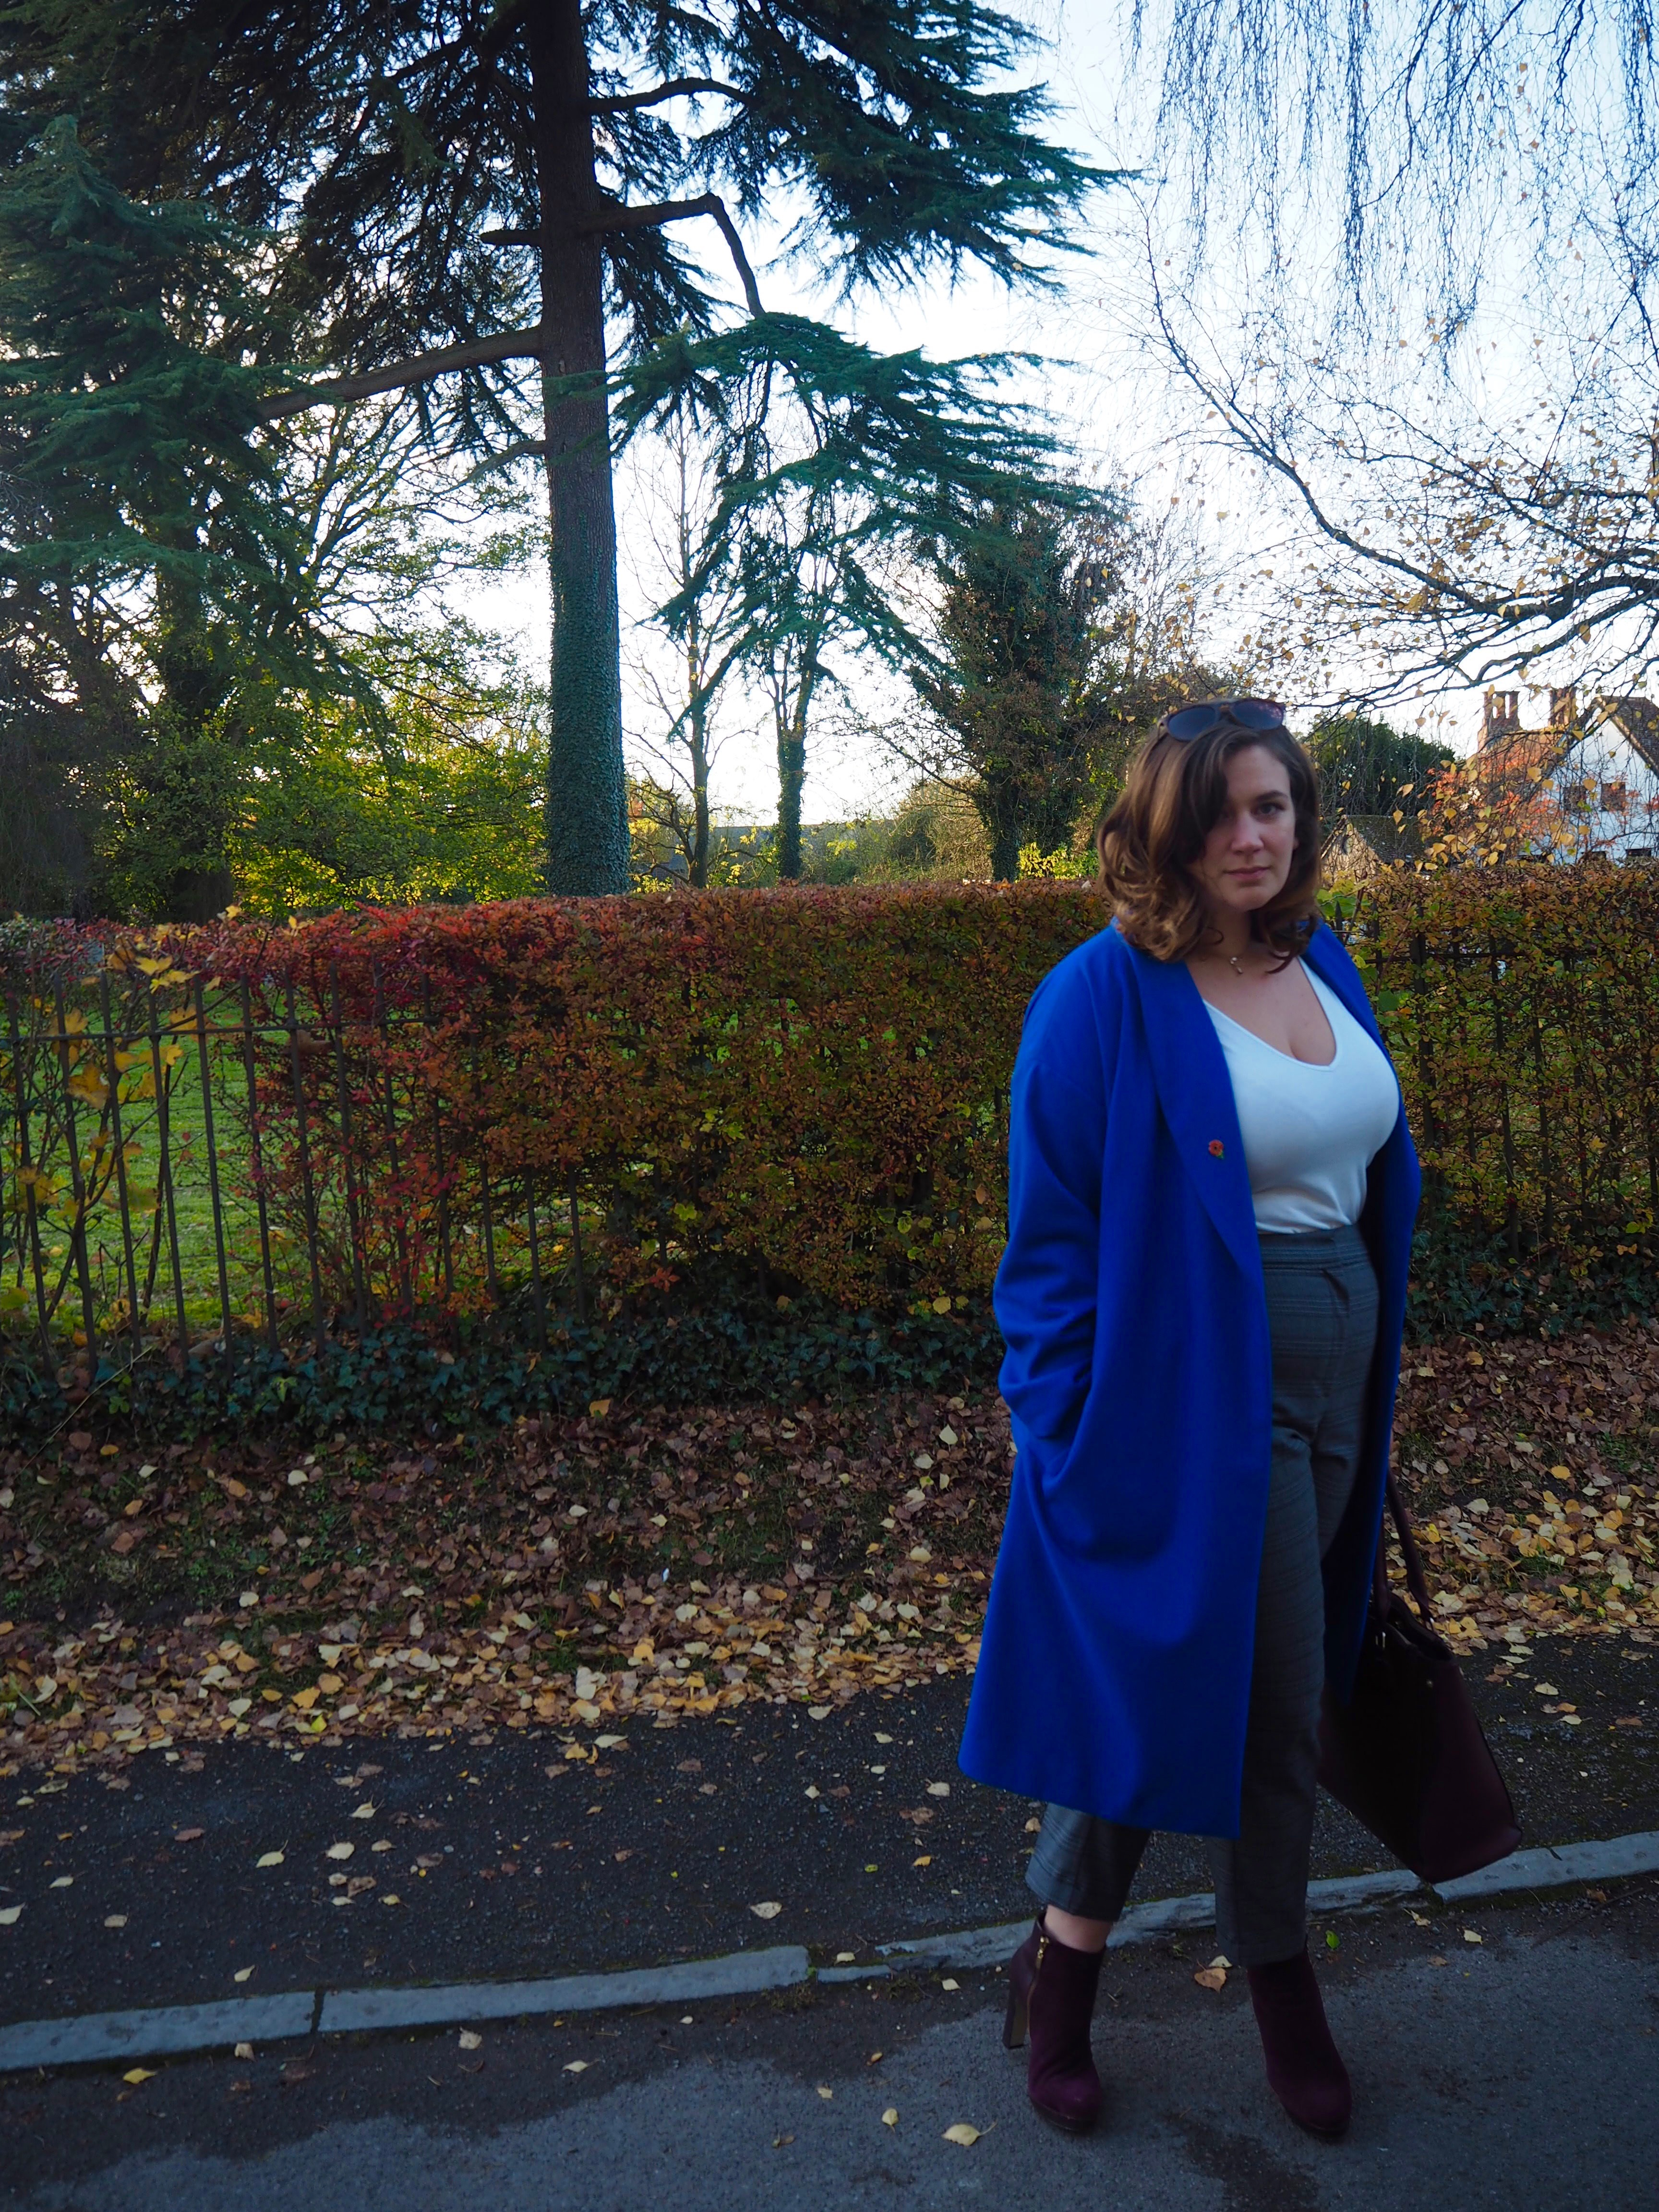 How to Survive Your Commute - commuting tips and plus size workwear